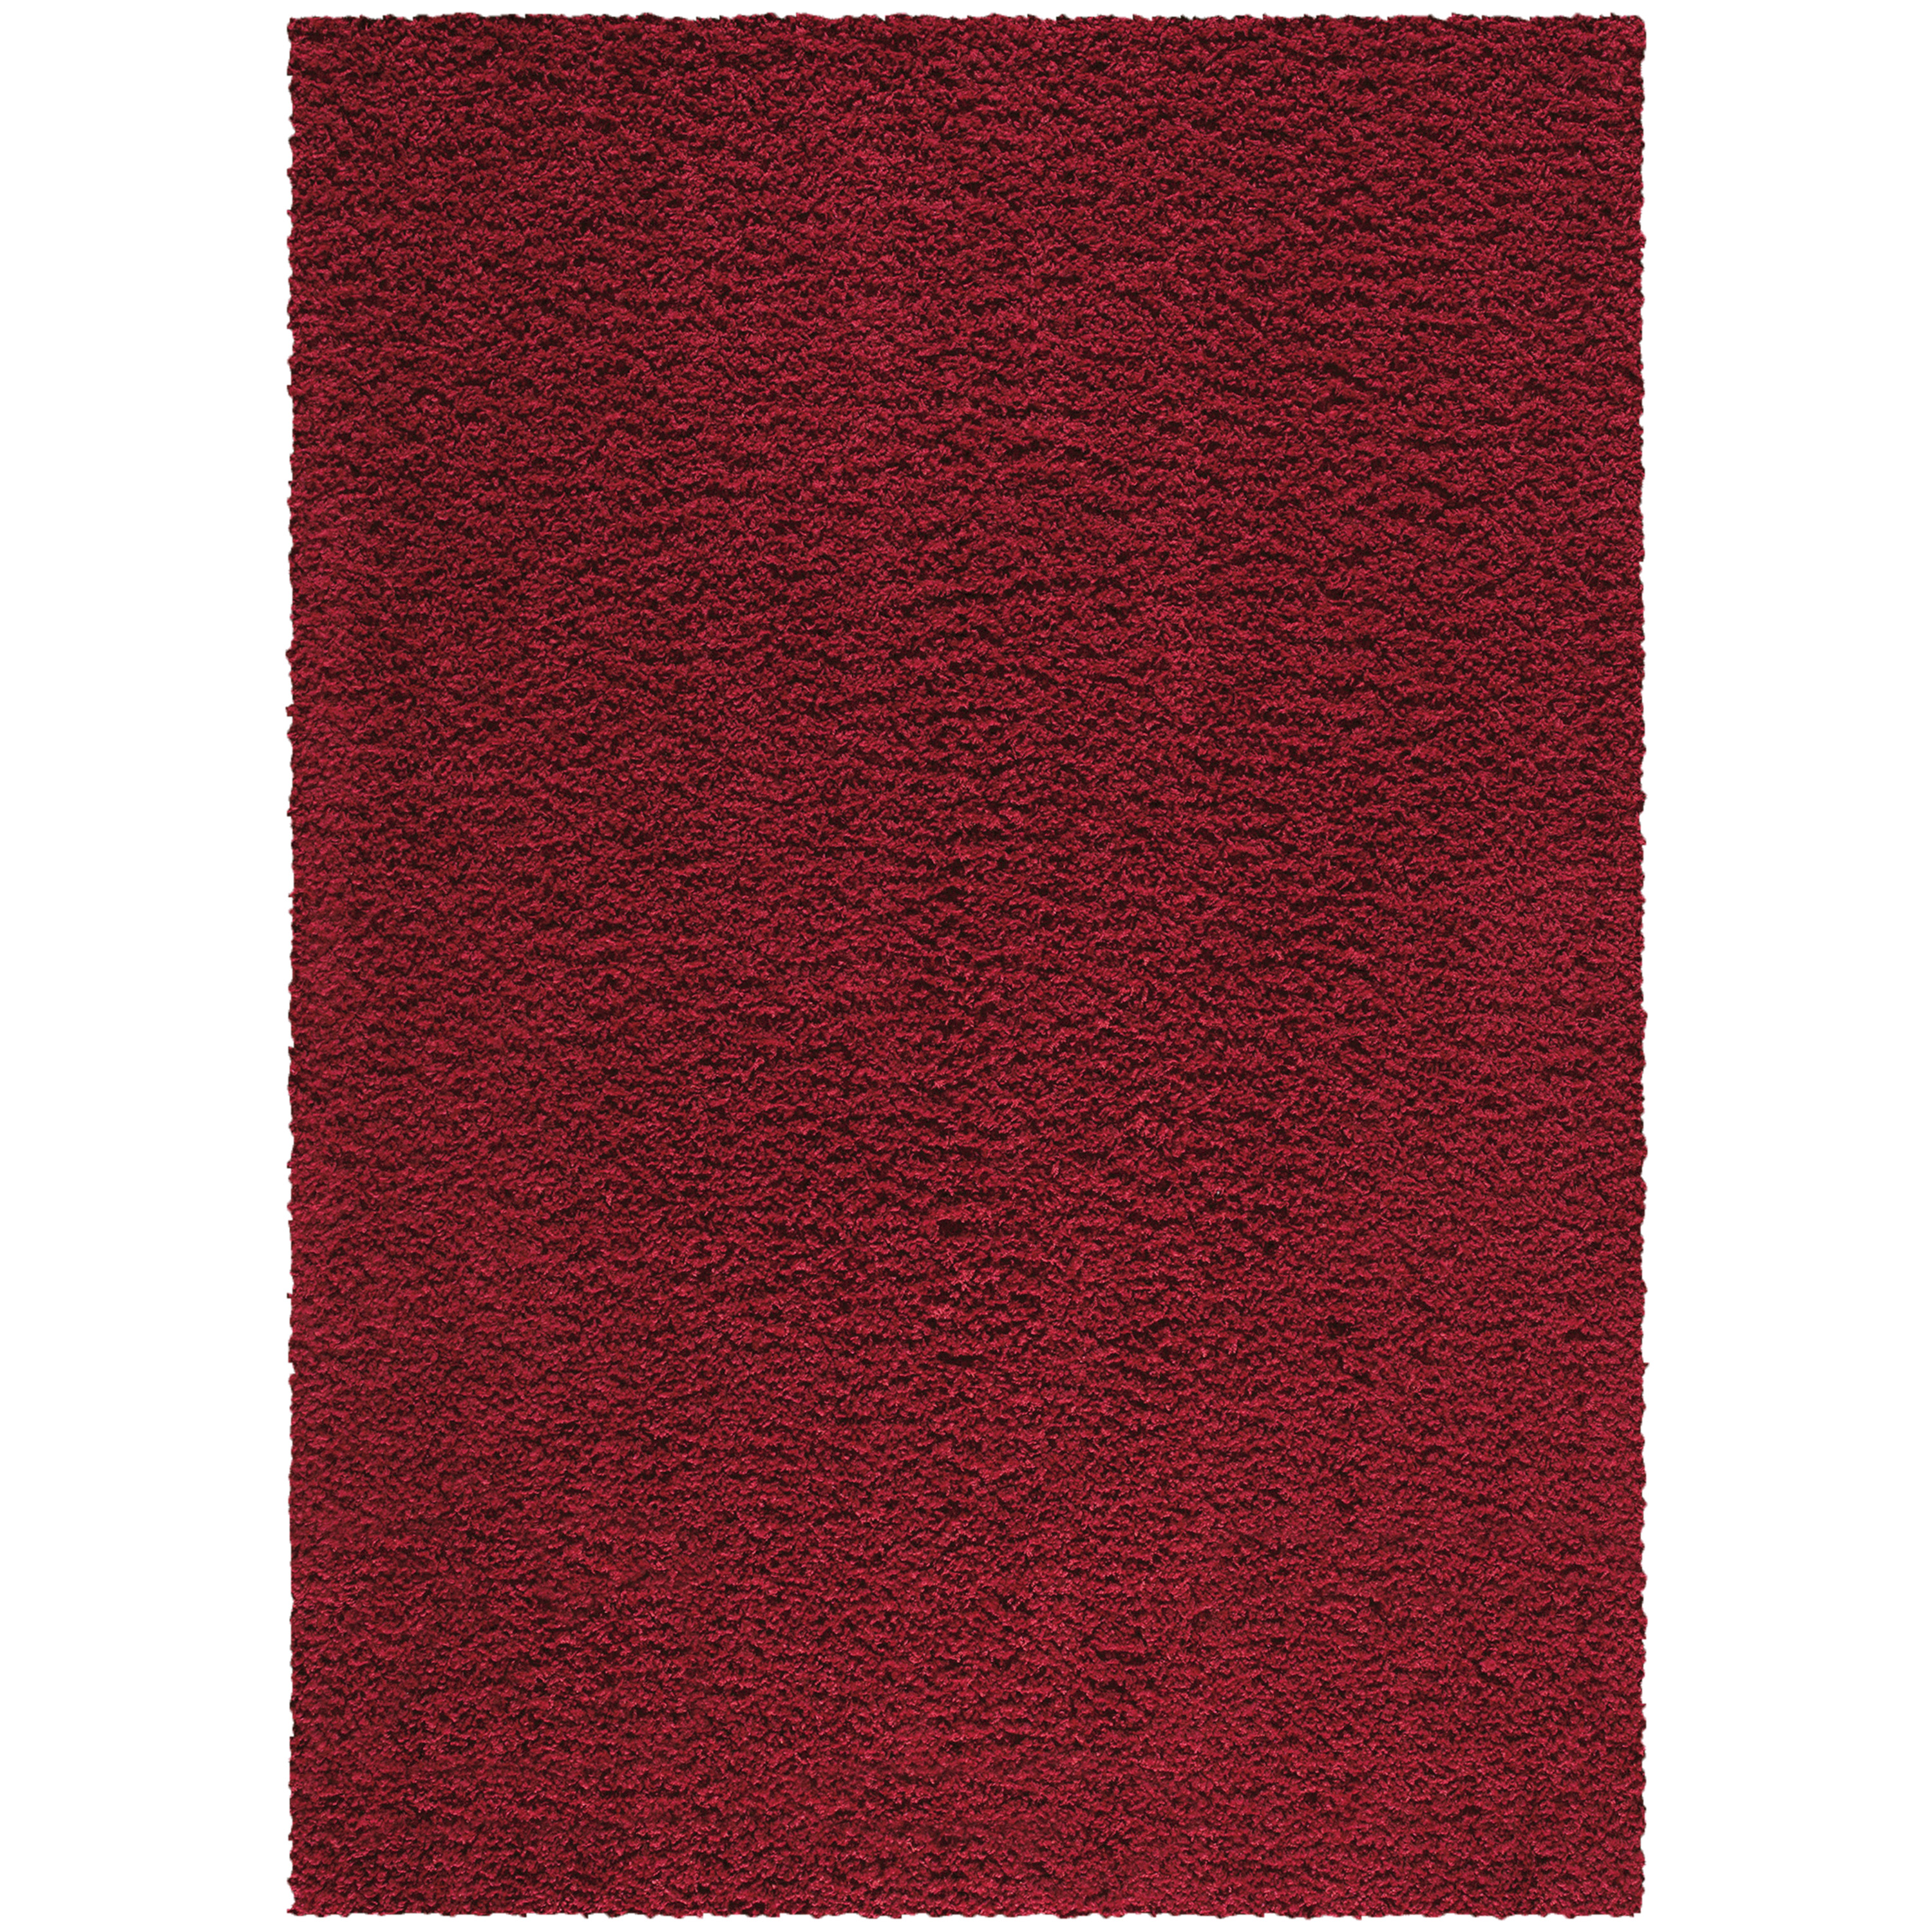 Mainstays Manchester Shag Area Rug or Runner Collection, Multiple Colors and Sizes